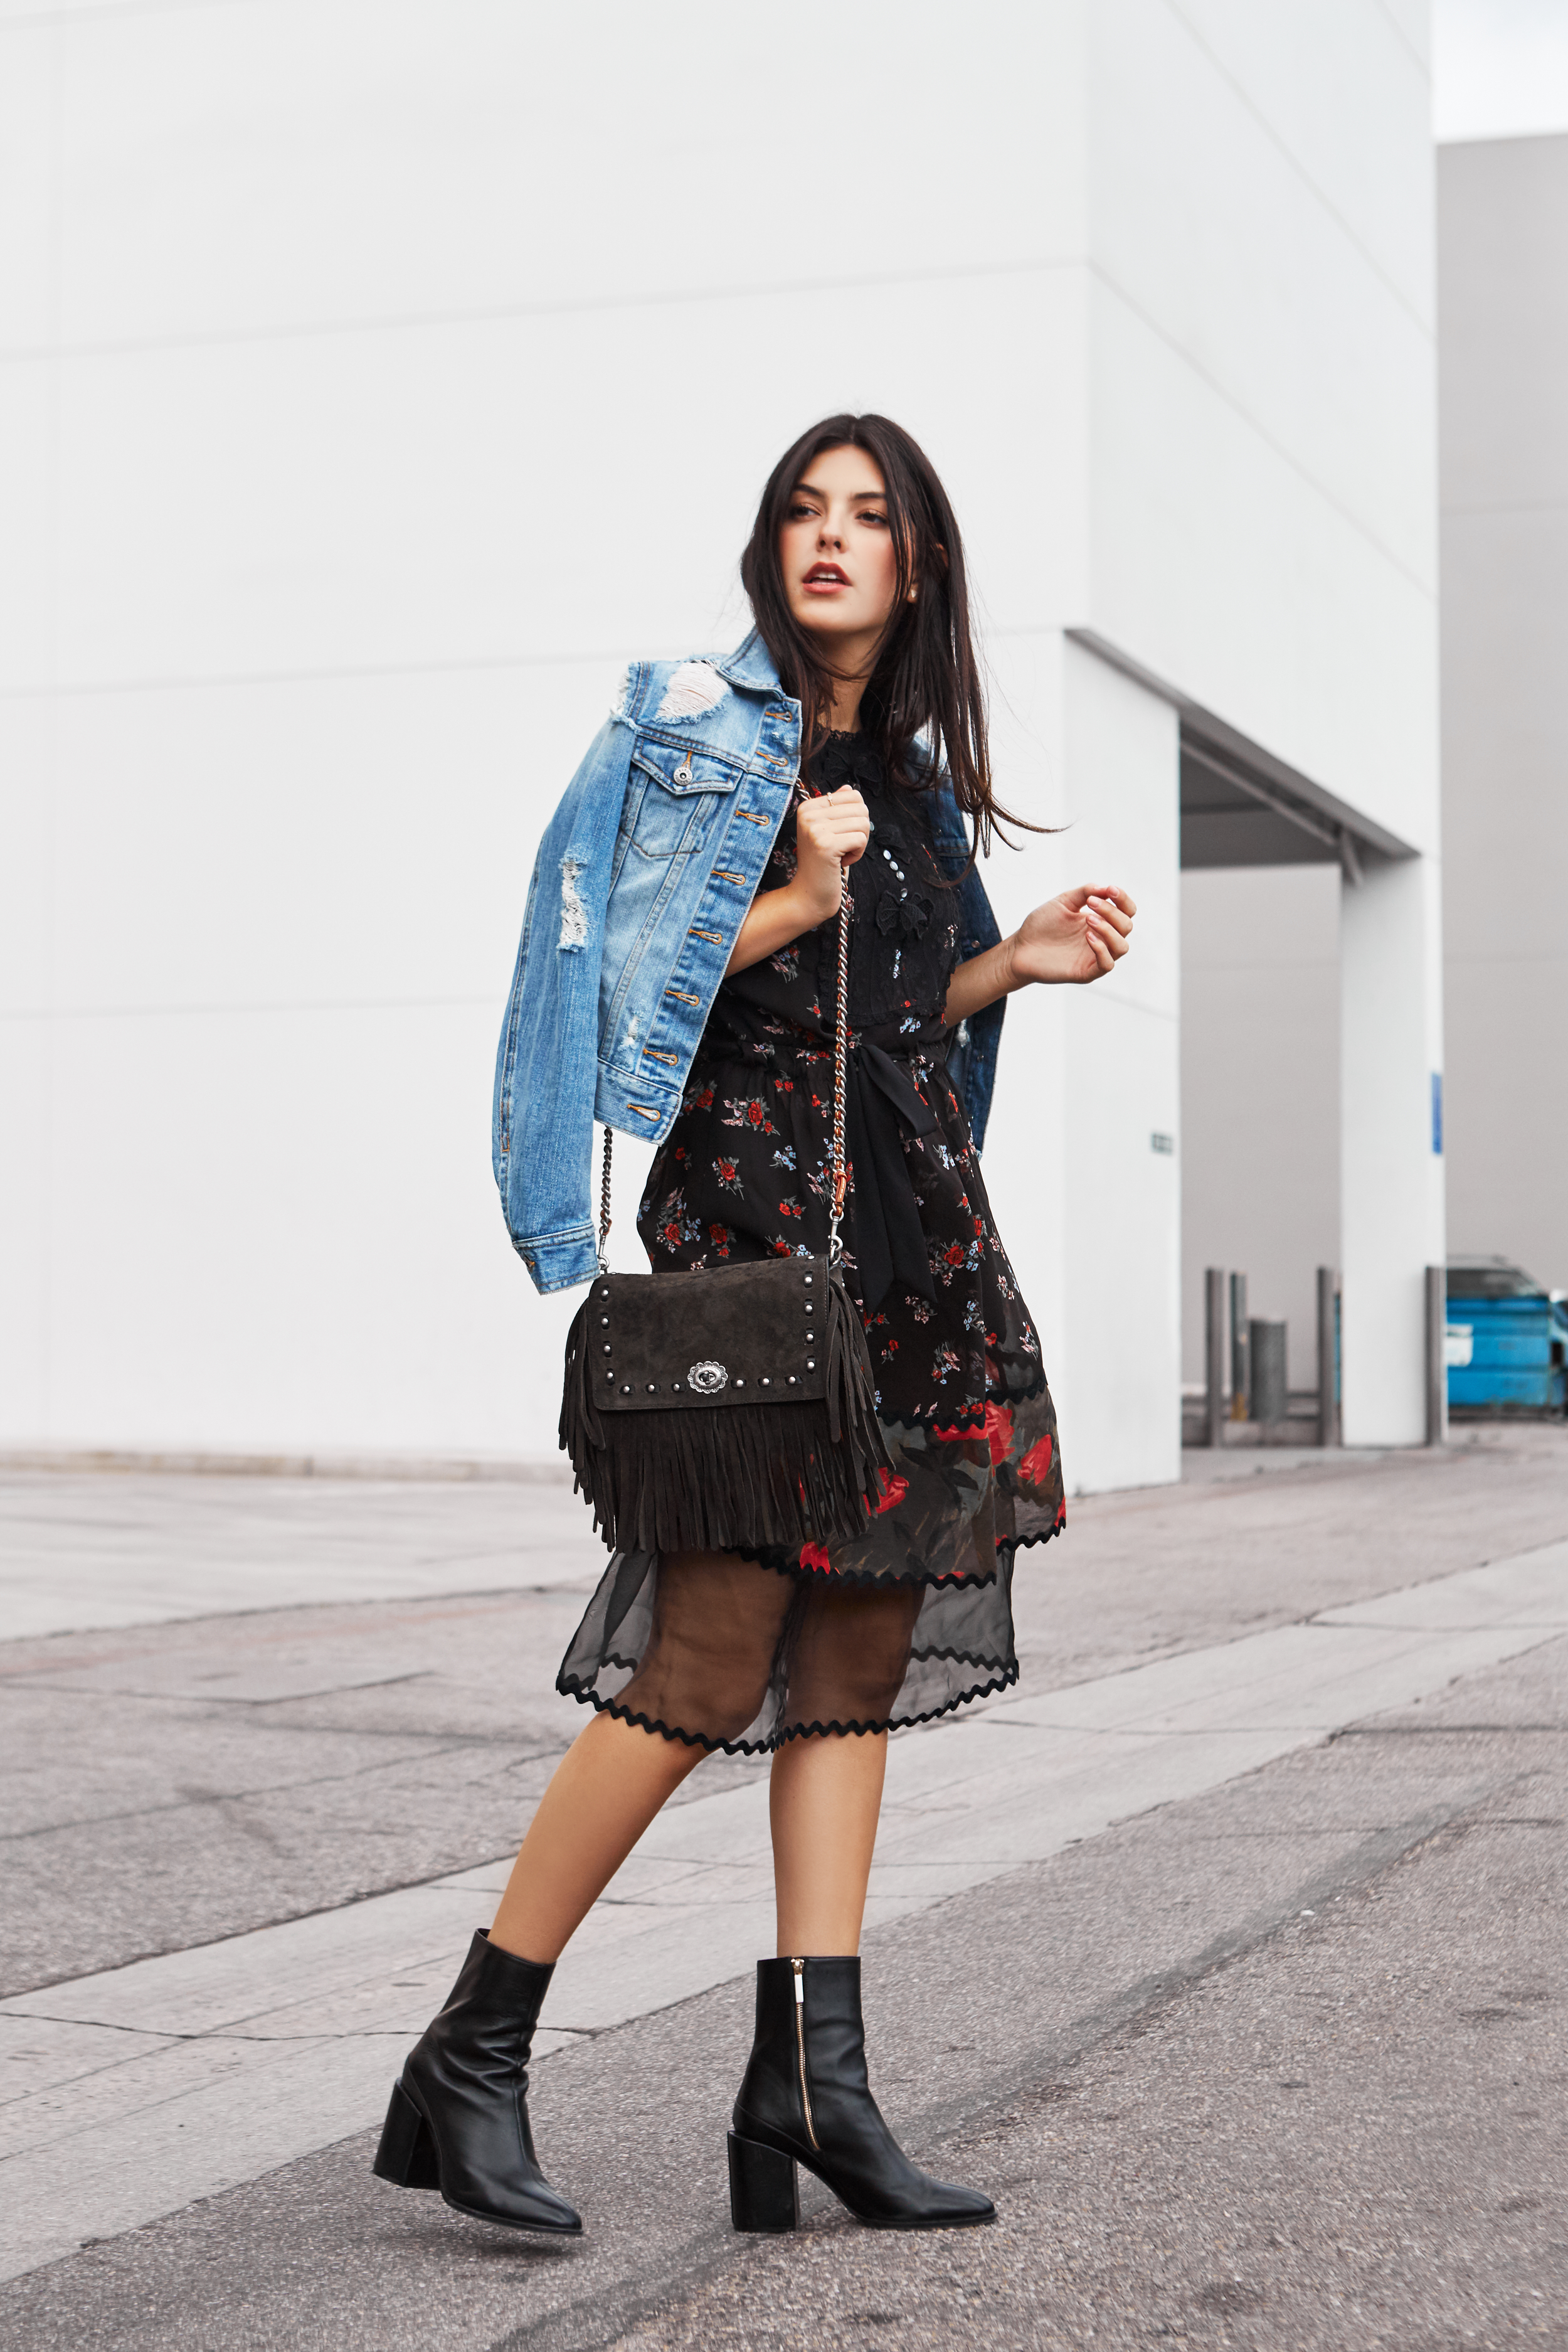 Julia Friedman makes florals look chic and edgy in Beverly Hills wearing a Coach Dress and Dear Francis boots.